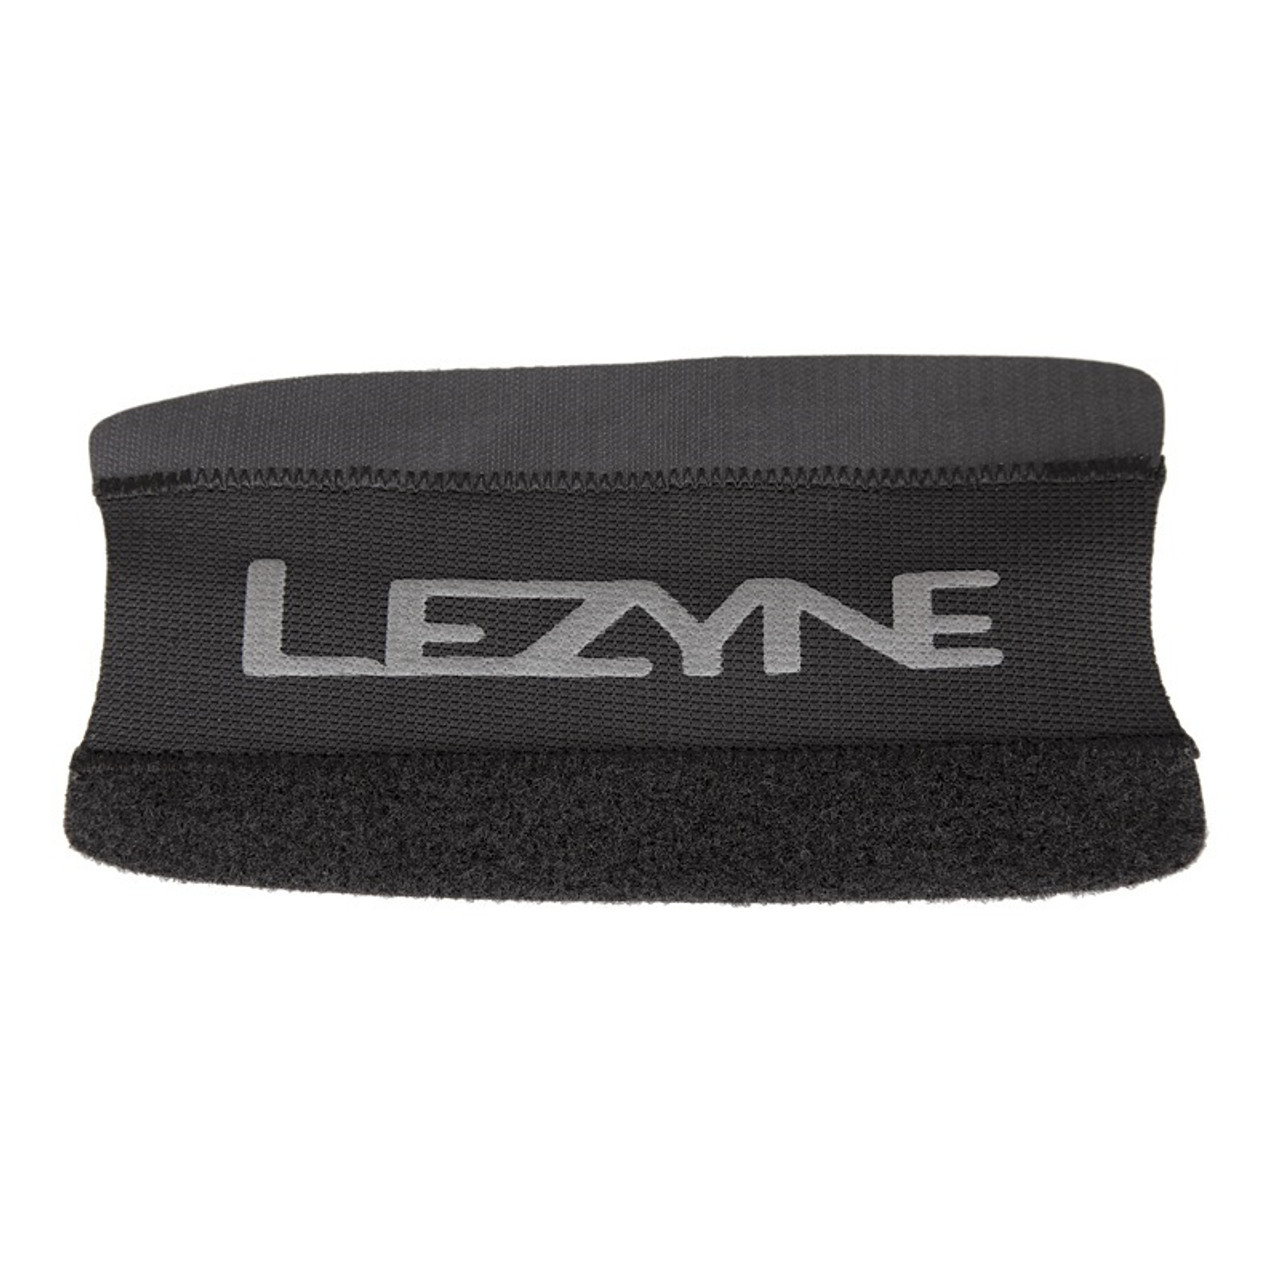 Lezyne Chainstay Protector Black All Sizes